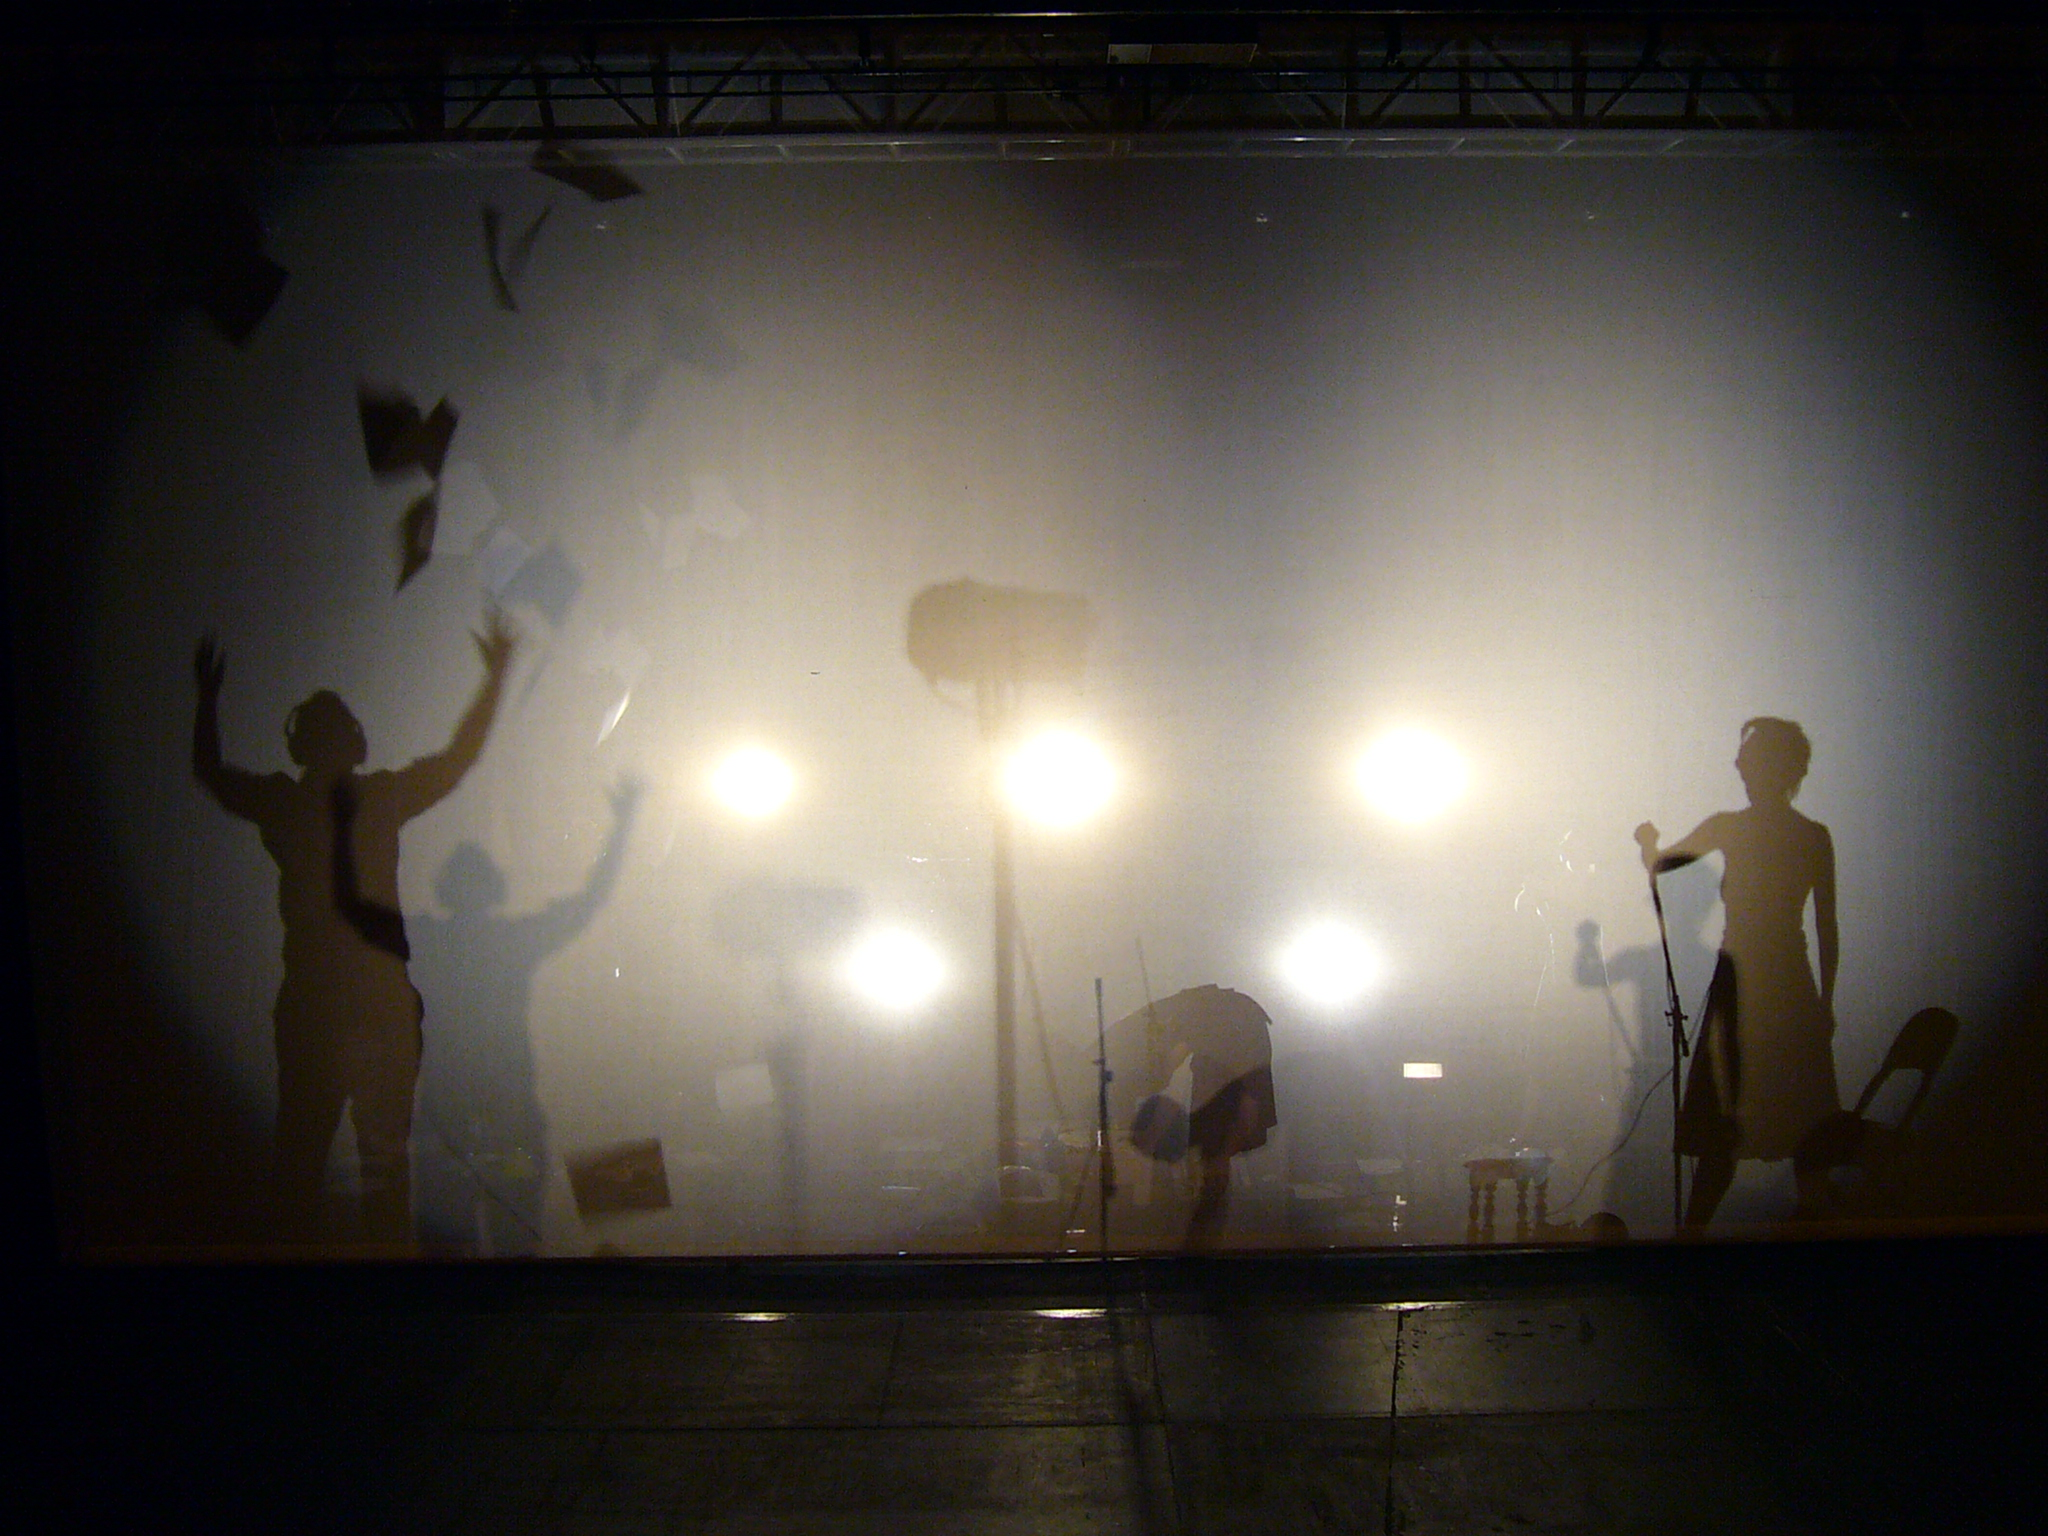 Three performers in silhouette against a gauze screen. One of them is throwing armfuls of paper in the air. (Whisper).